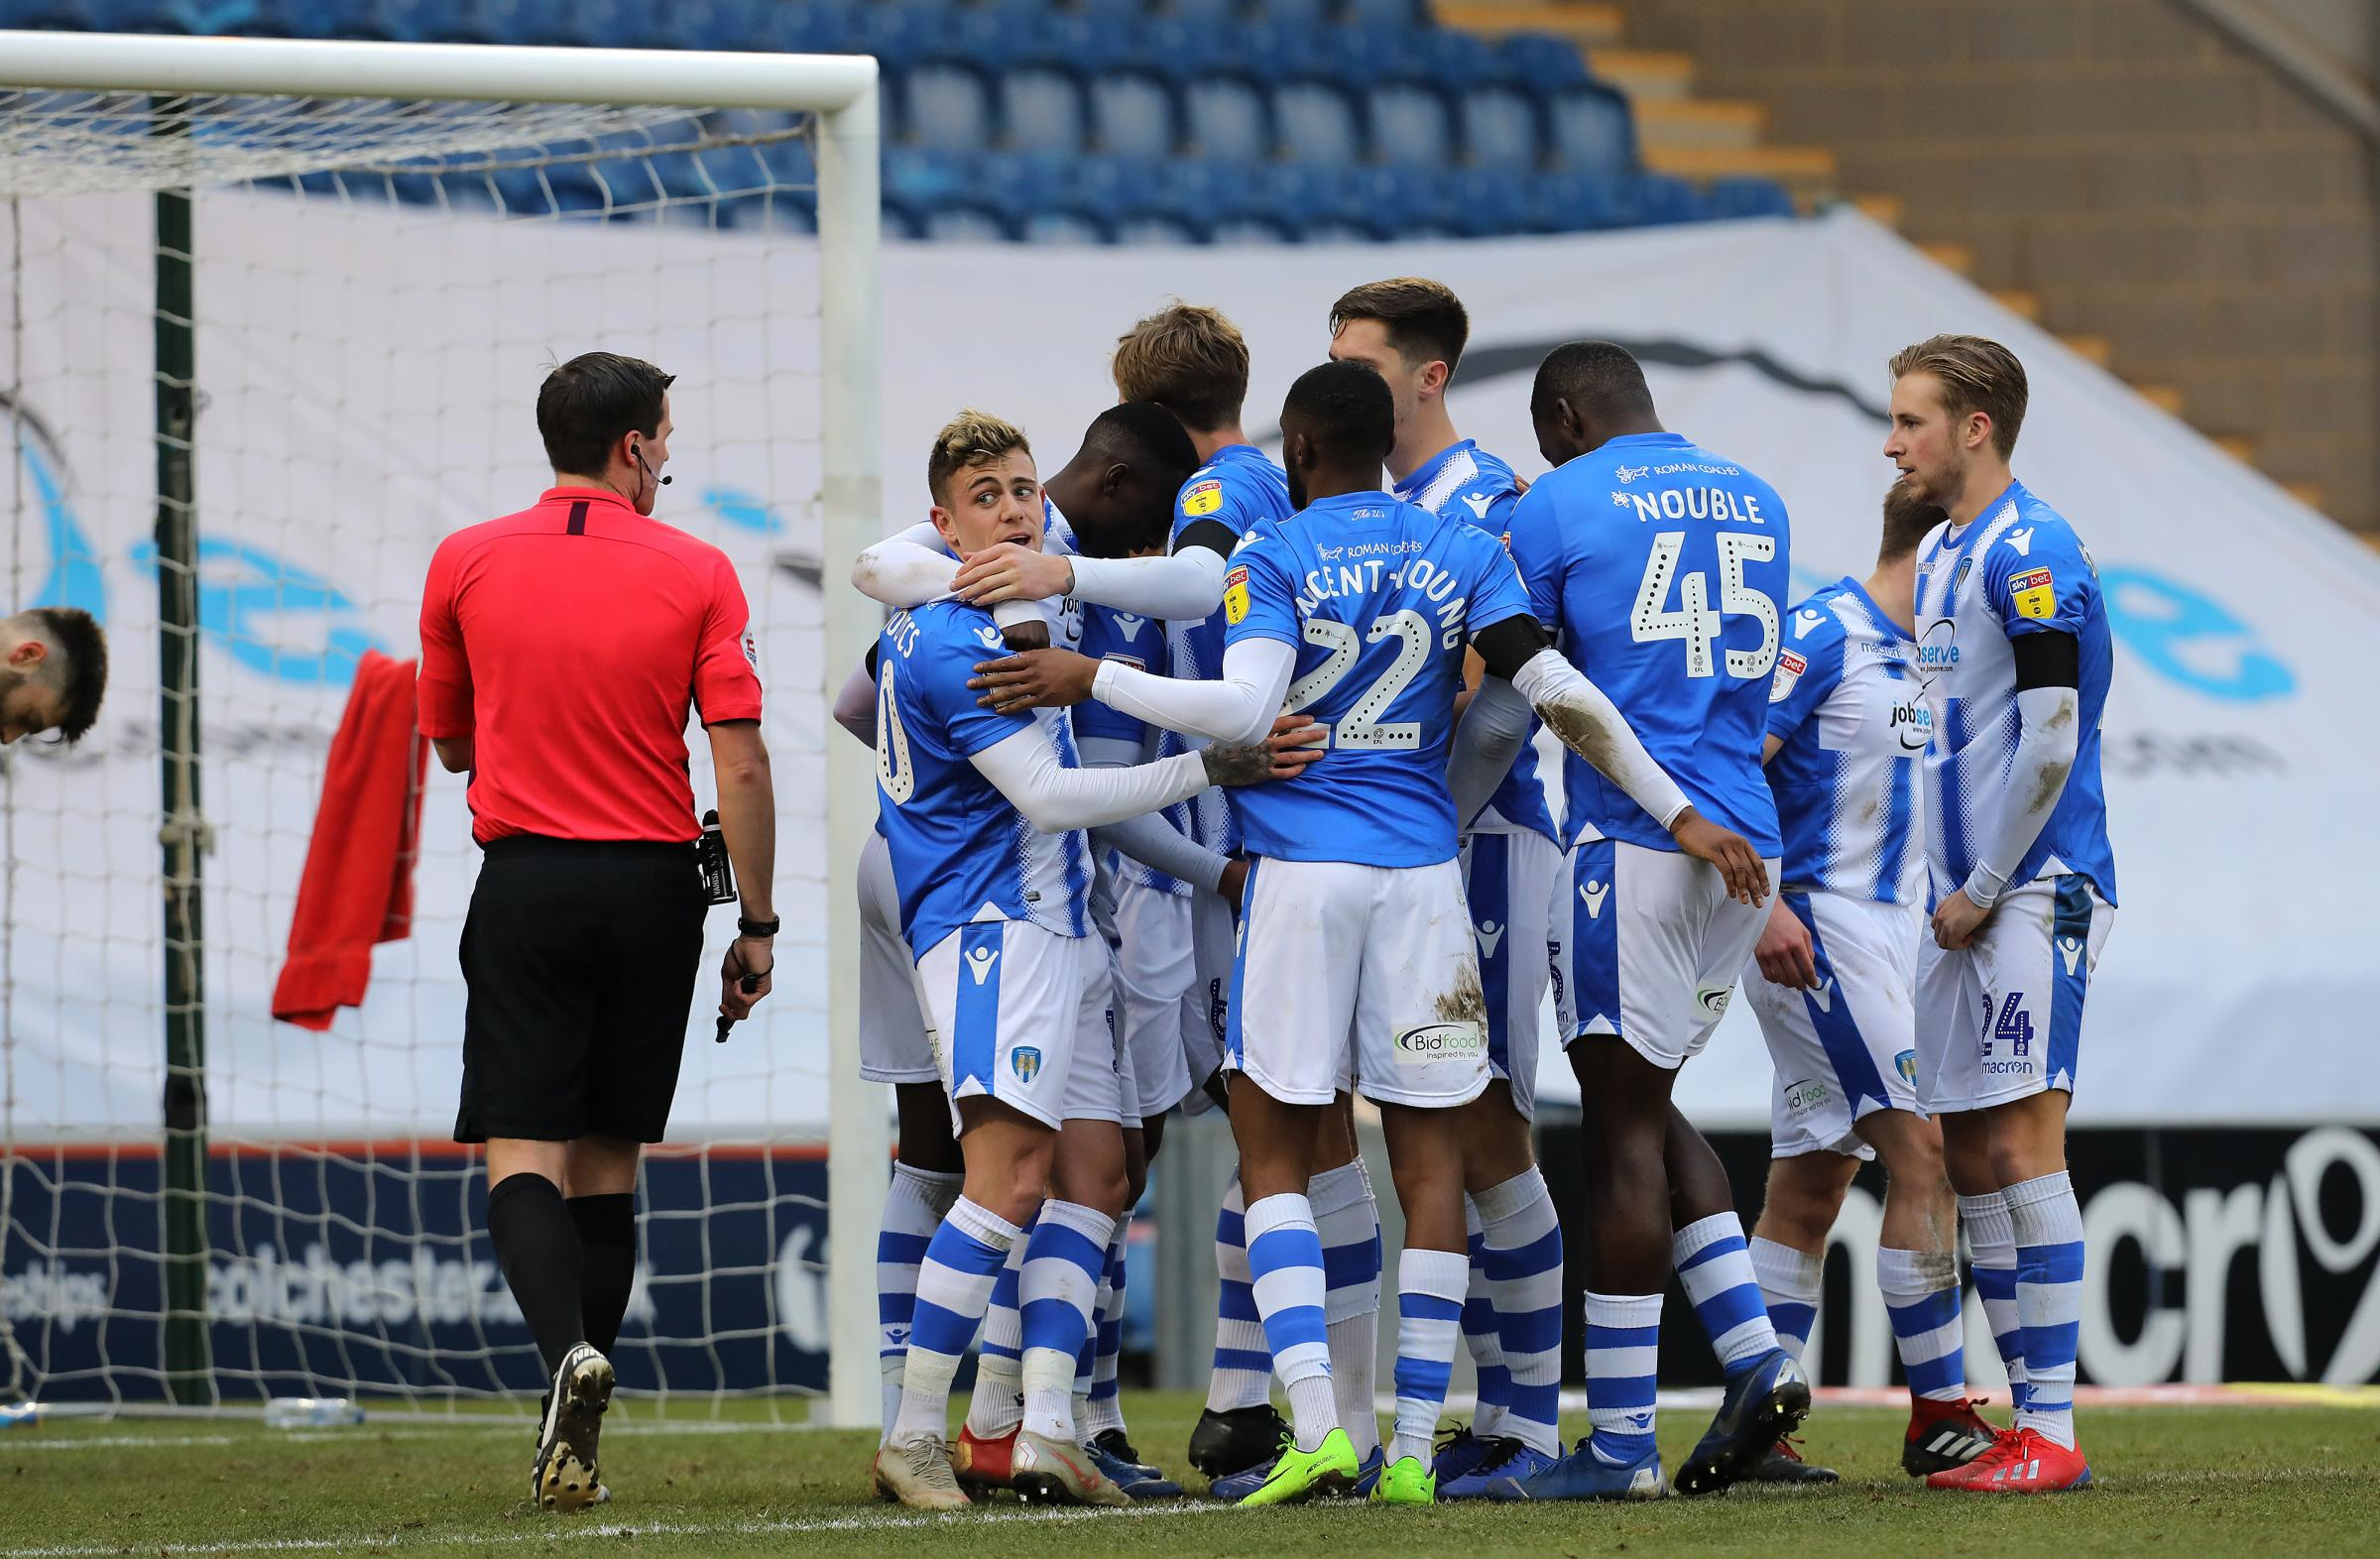 Group hug - Colchester United's players celebrate after Abo Eisa scored their third  goal against Cheltenham Town Picture: STEVE BRADING